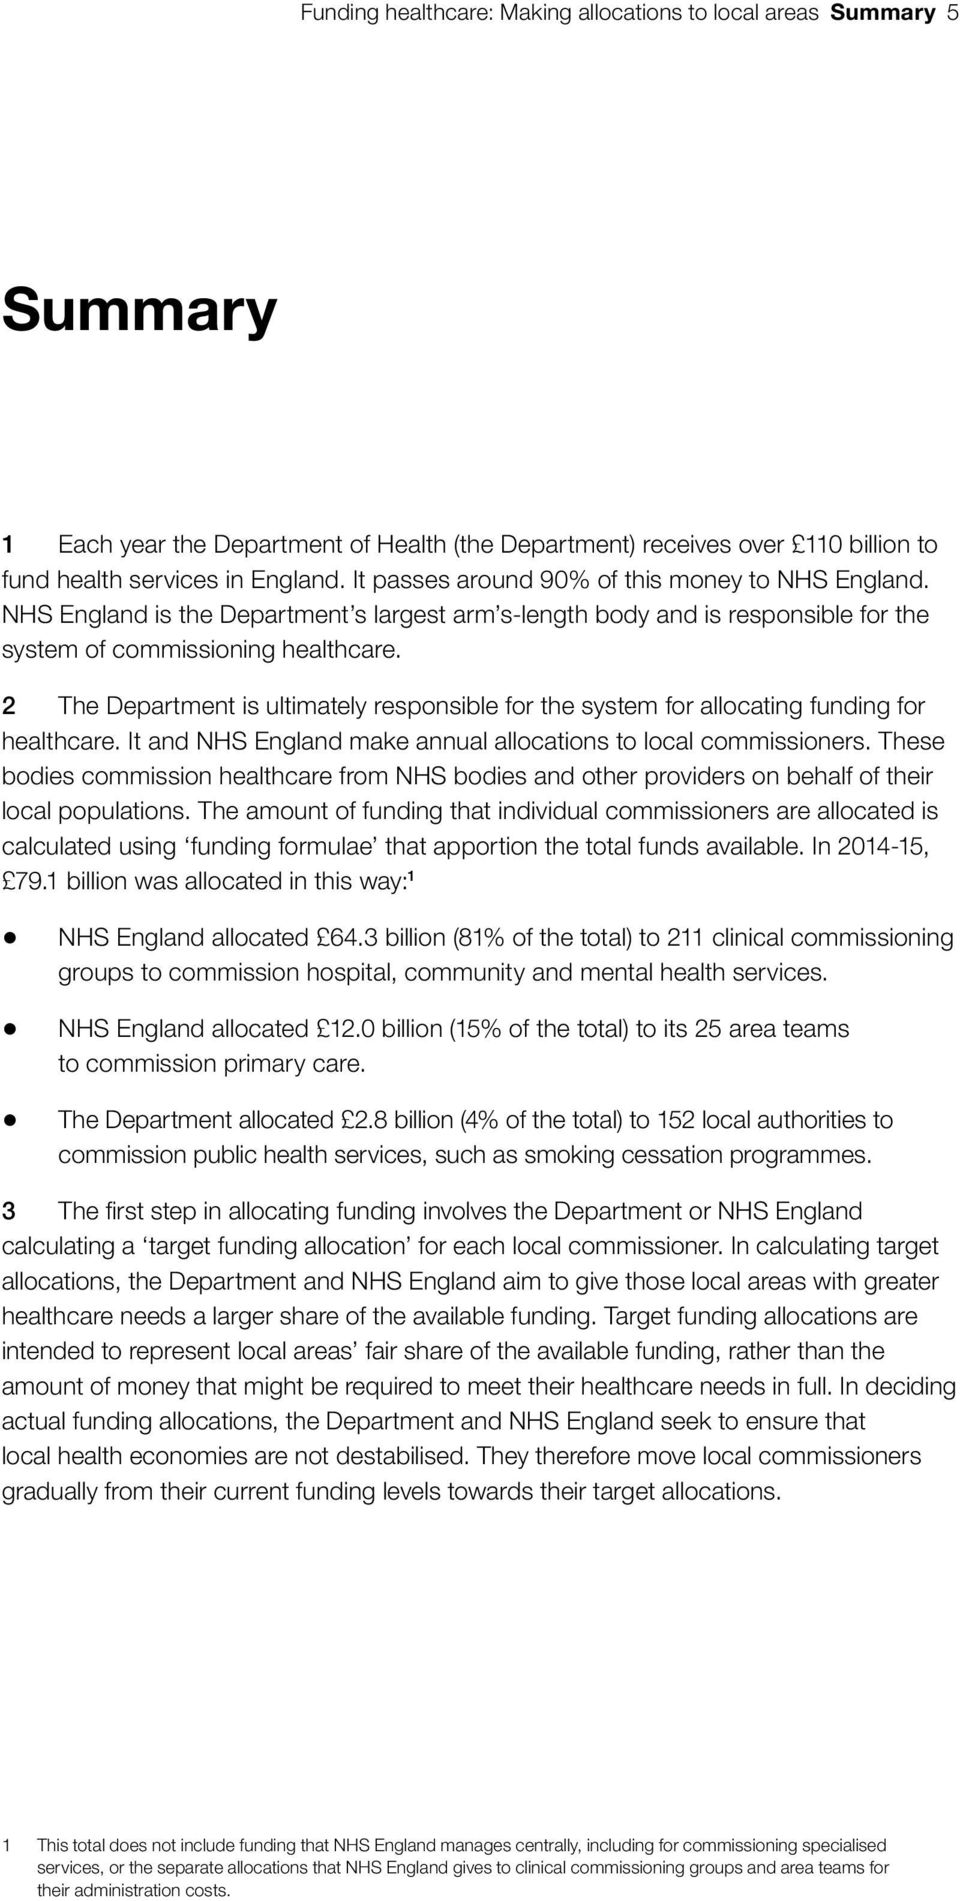 2 The Department is ultimately responsible for the system for allocating funding for healthcare. It and NHS England make annual allocations to local commissioners.